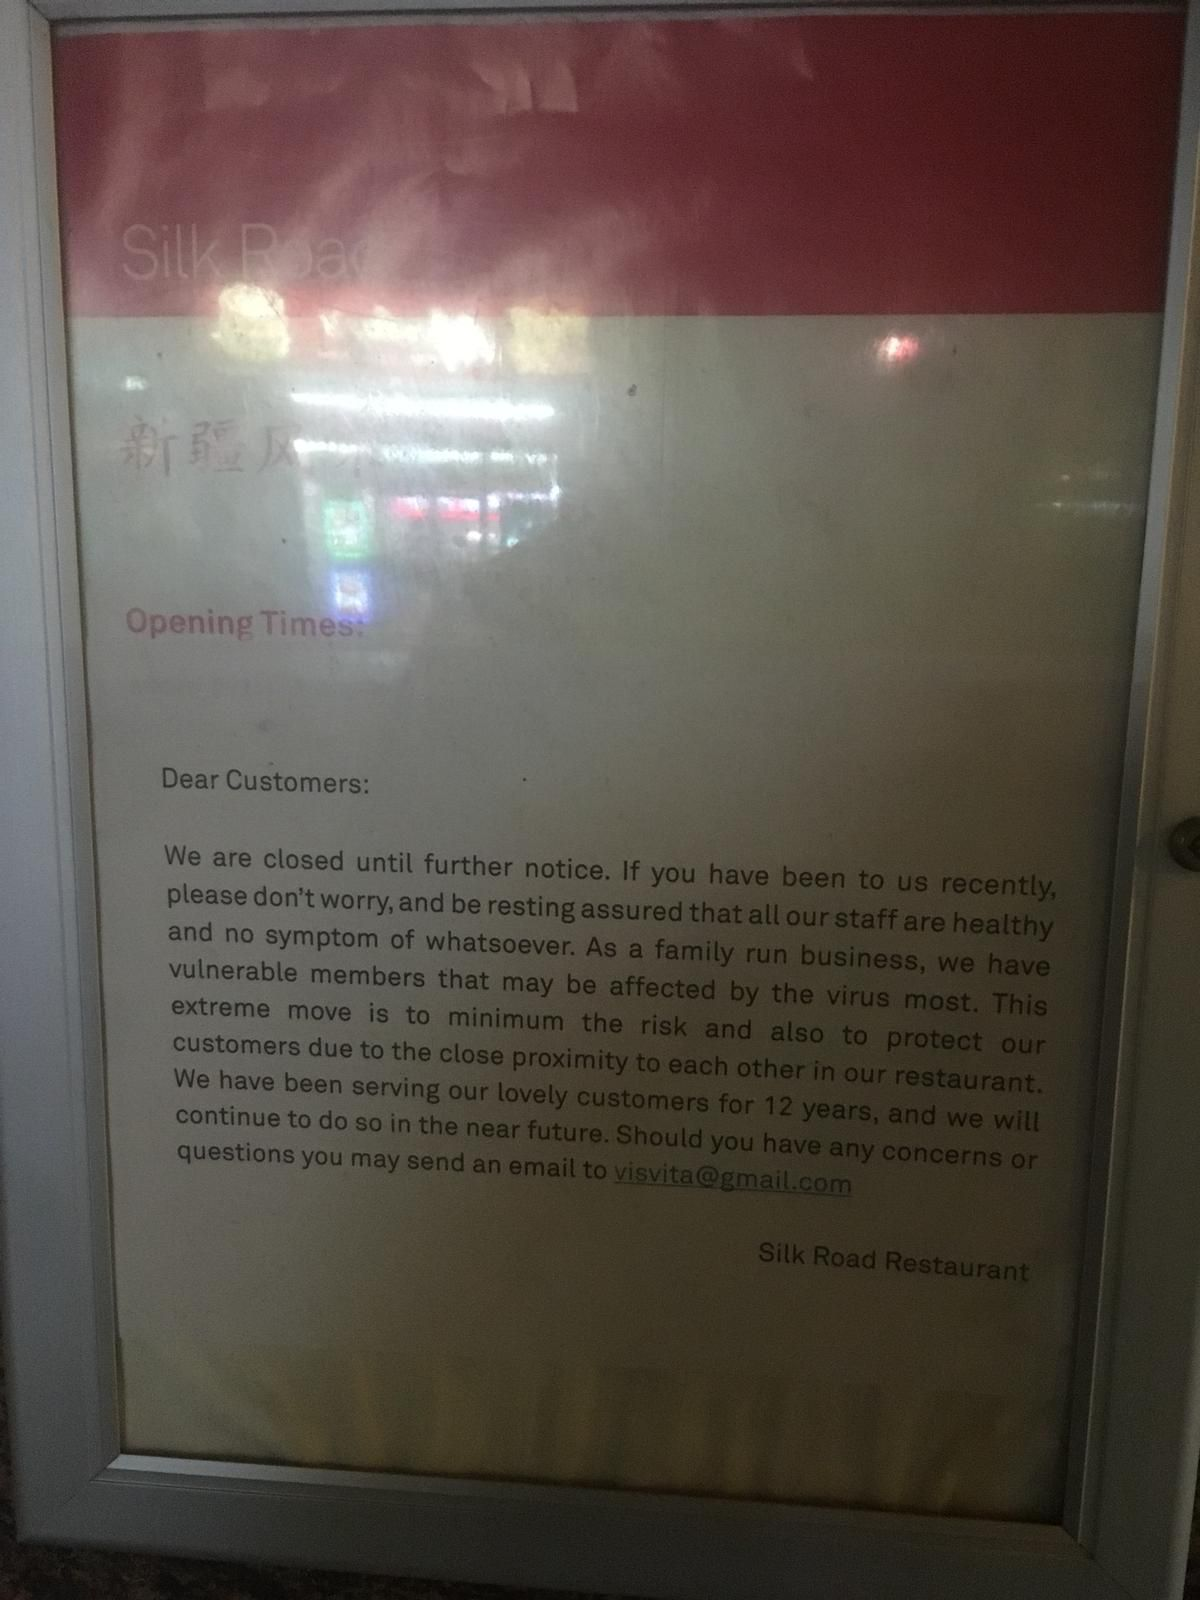 A sign announcing temporary closure of the Silk Road restaurant in Camberwell